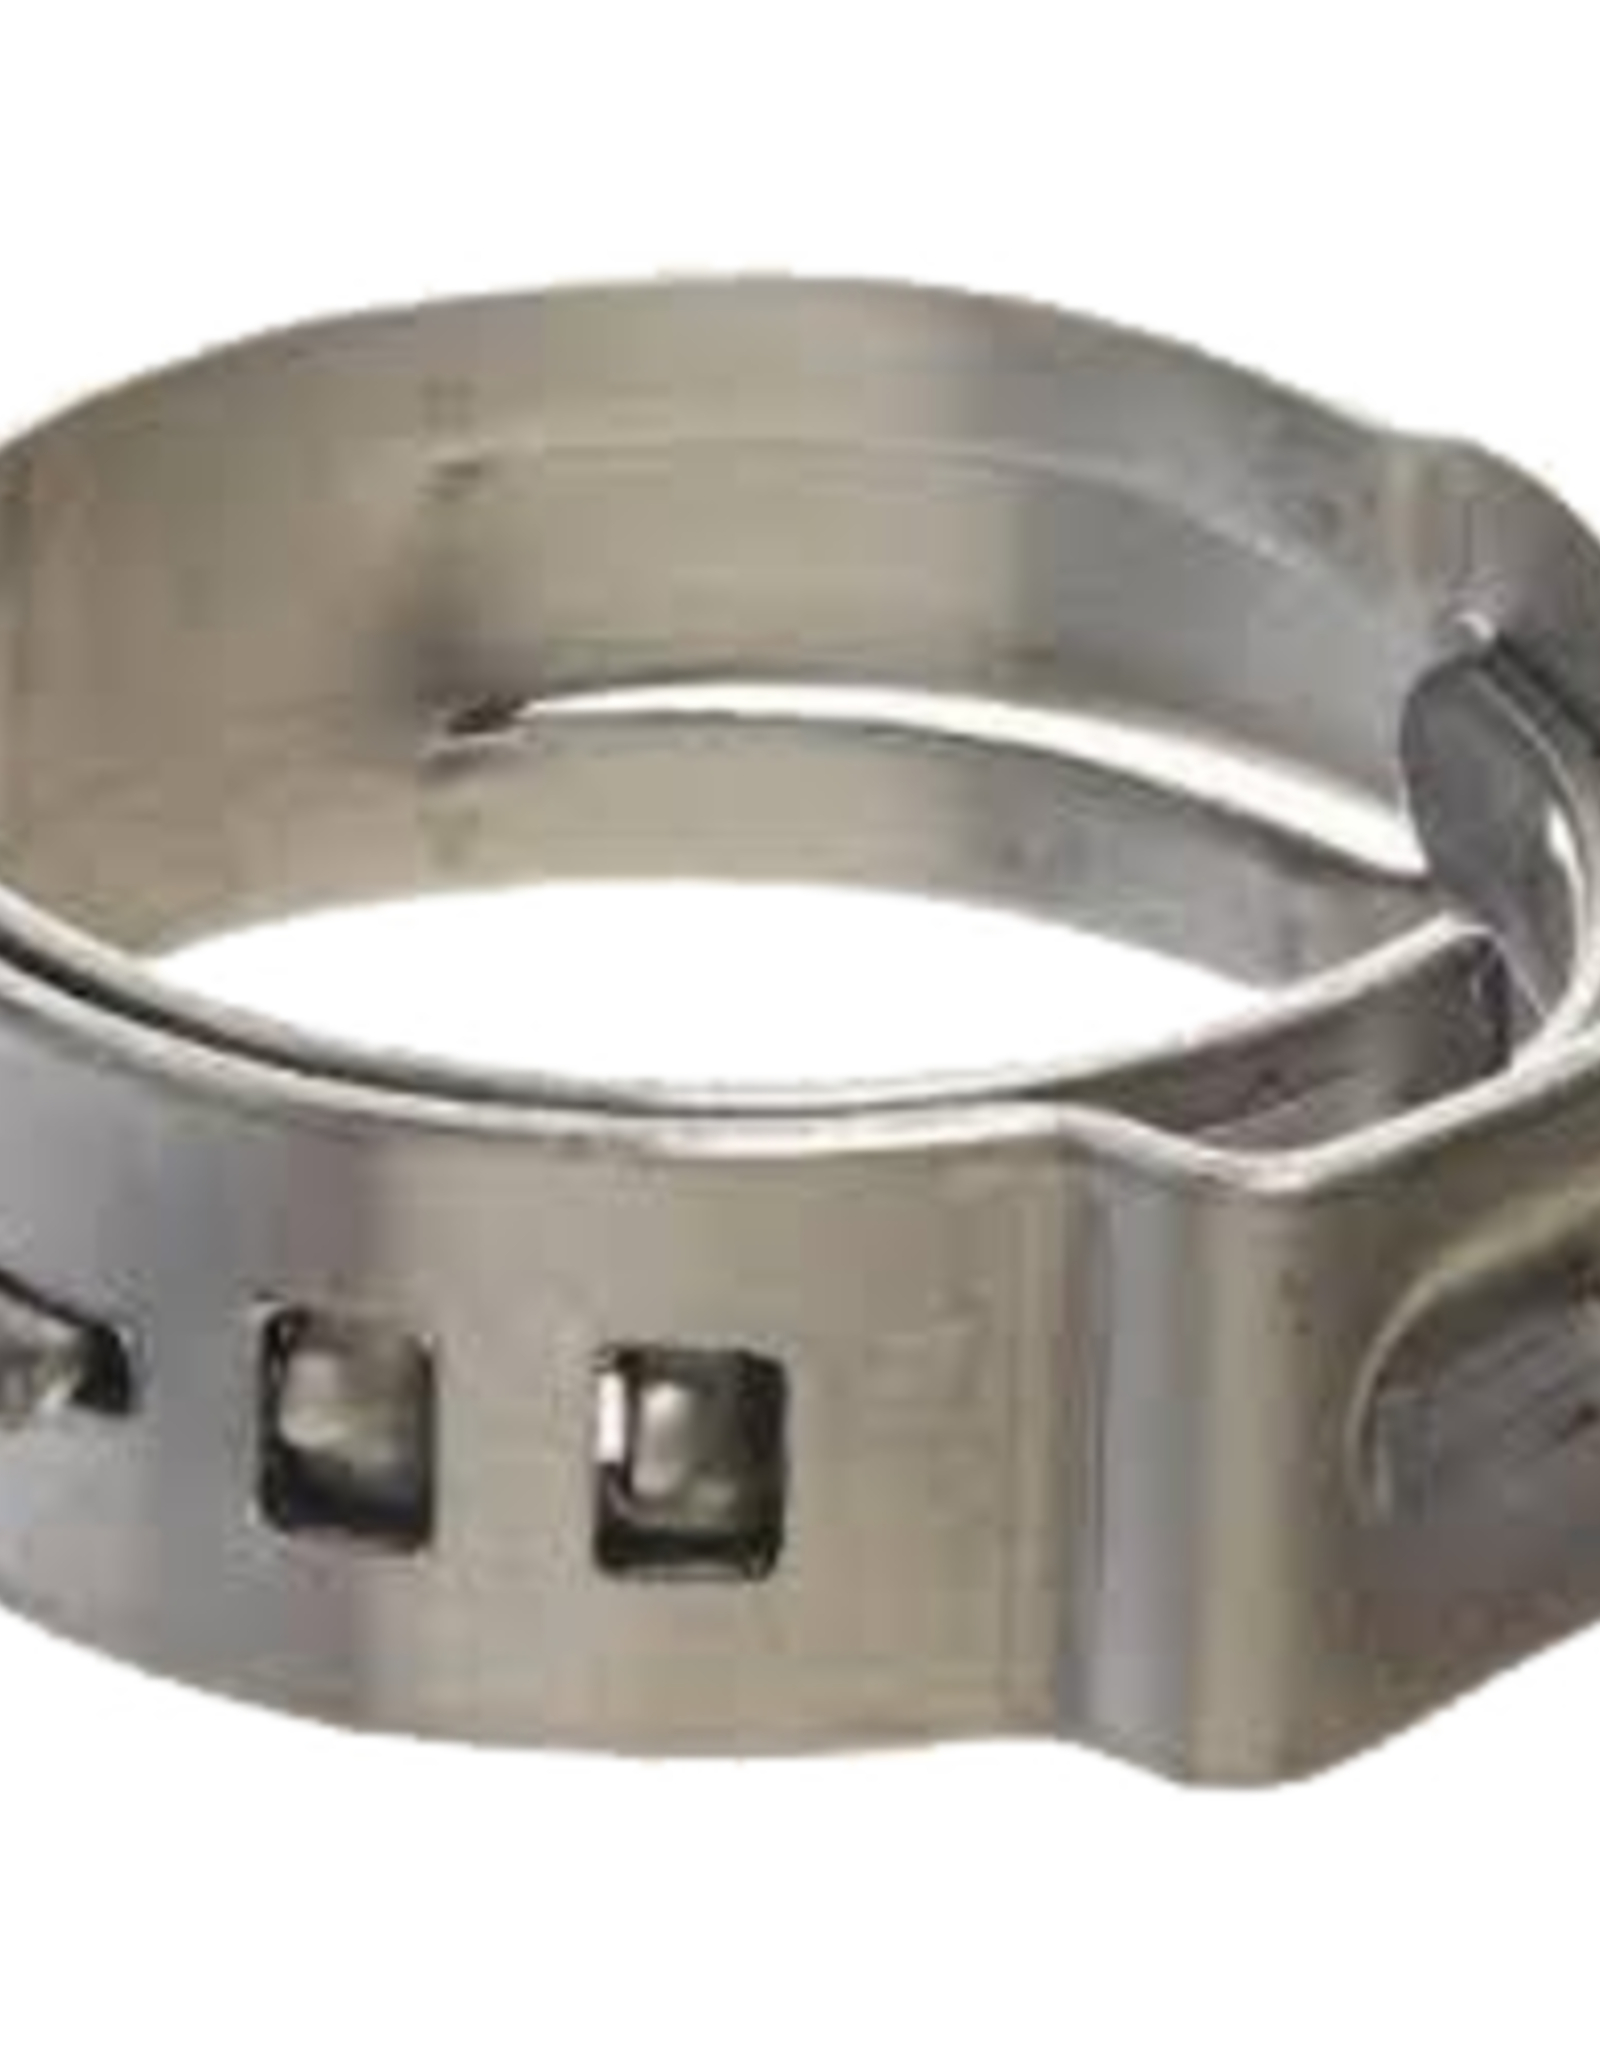 Stepless Hose Clamp - 1/2 in. OD Tubing